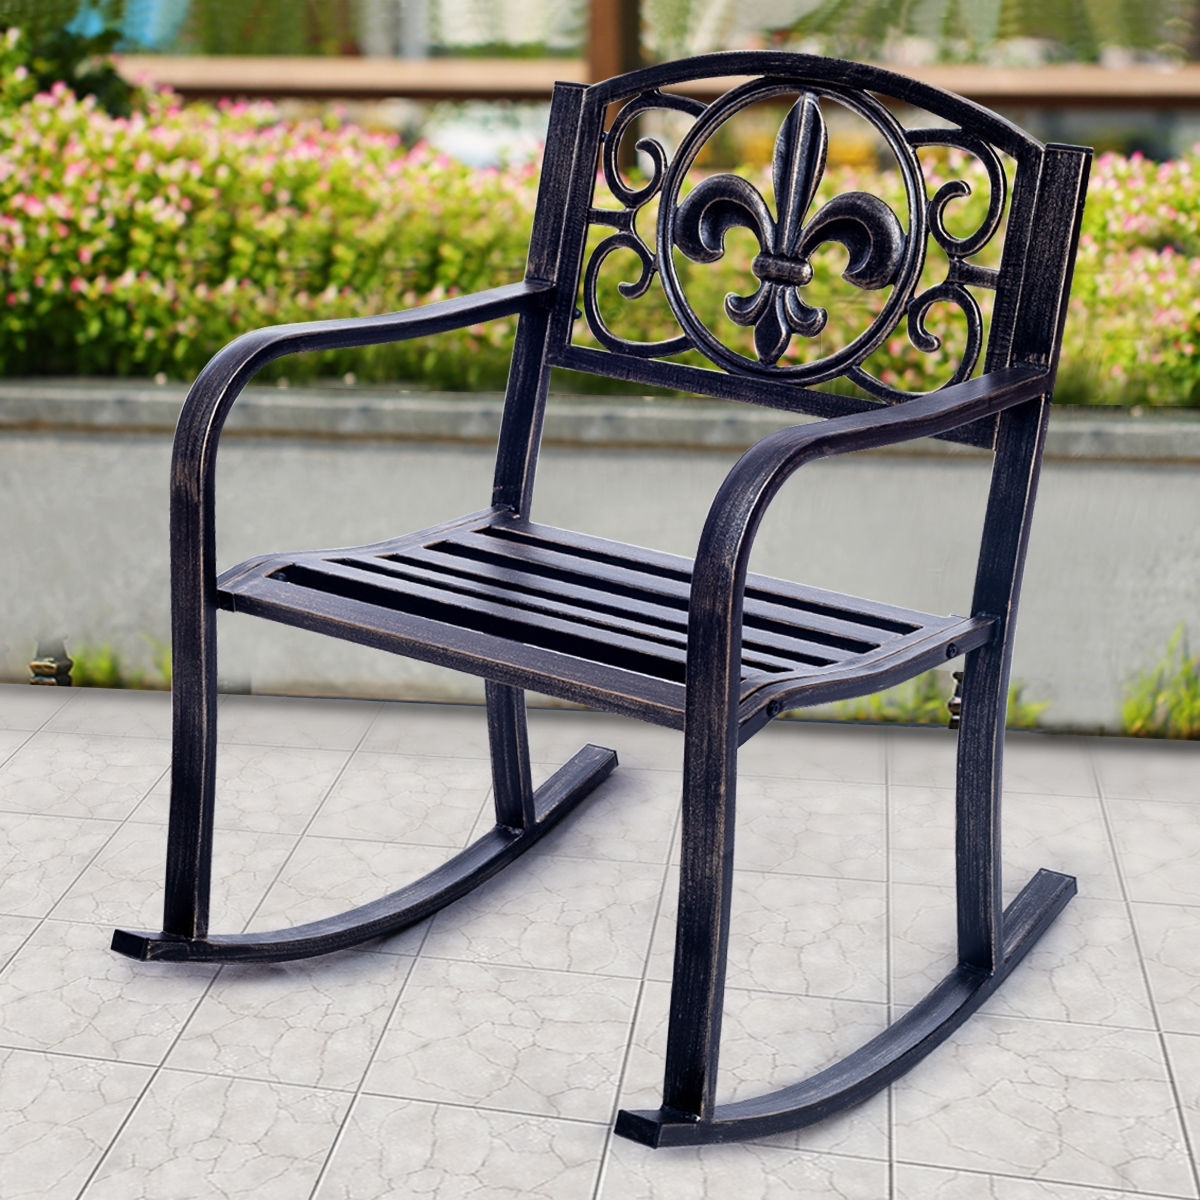 Most Popular Patio Metal Rocking Chairs Within Costway: Costway Patio Metal Rocking Chair Porch Seat Deck Outdoor (View 7 of 15)